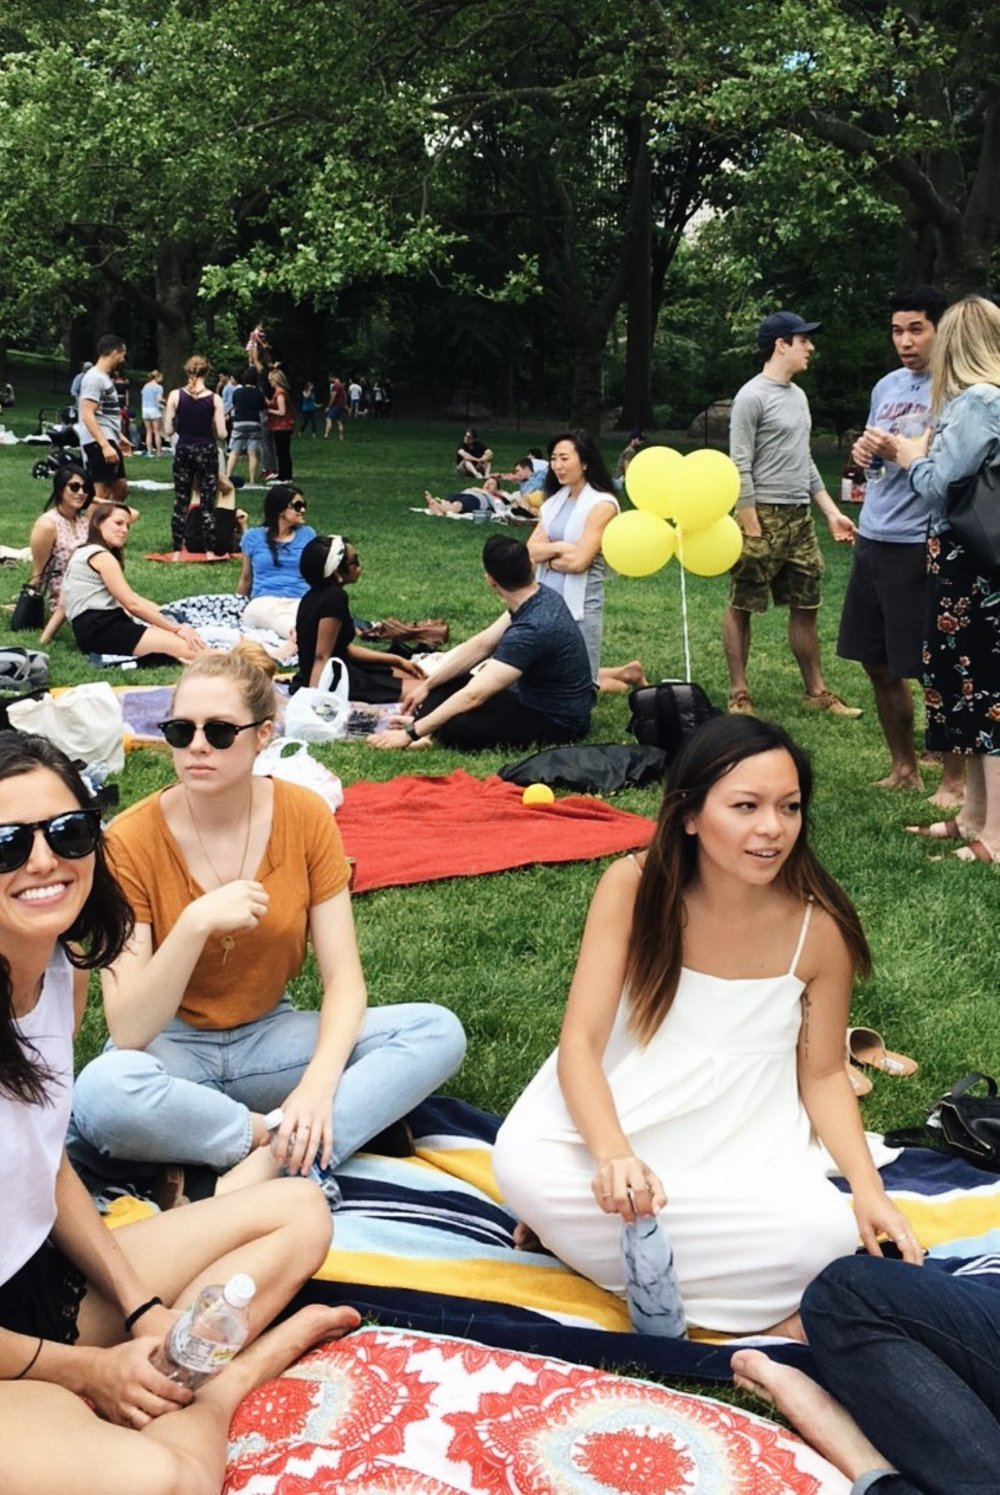 Meredith's church was having a get-together in Central Park. Pictured here is me blending in with the locals - which now includes me!